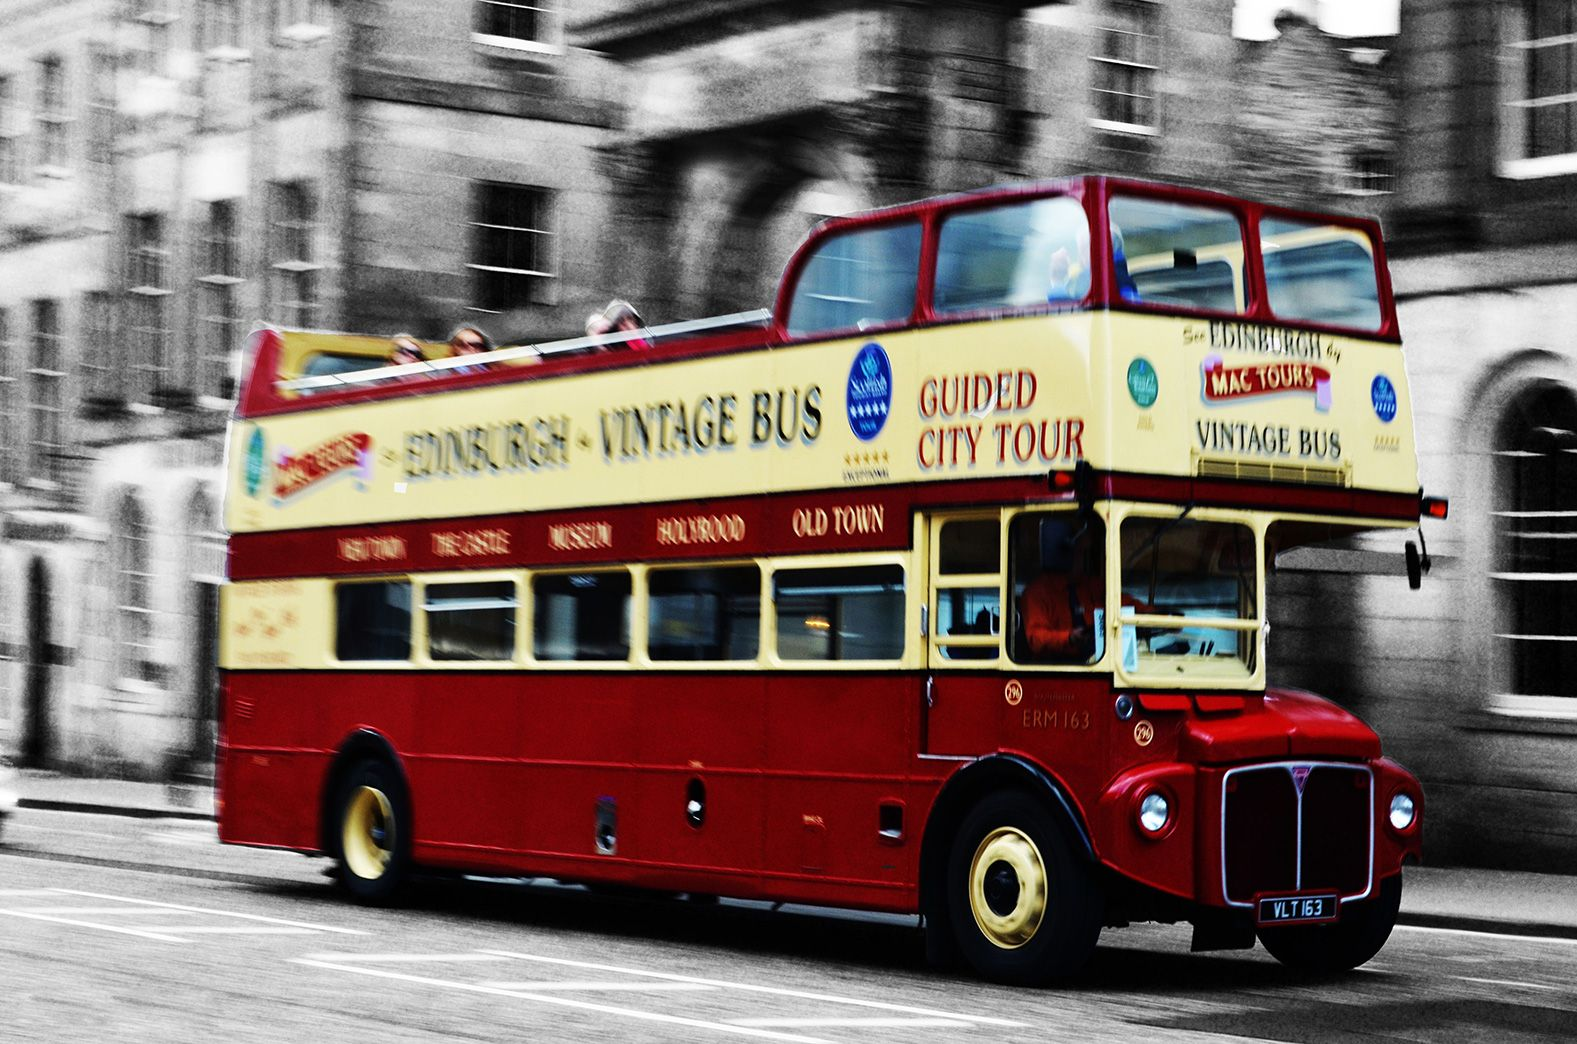 Bus Edimburgo